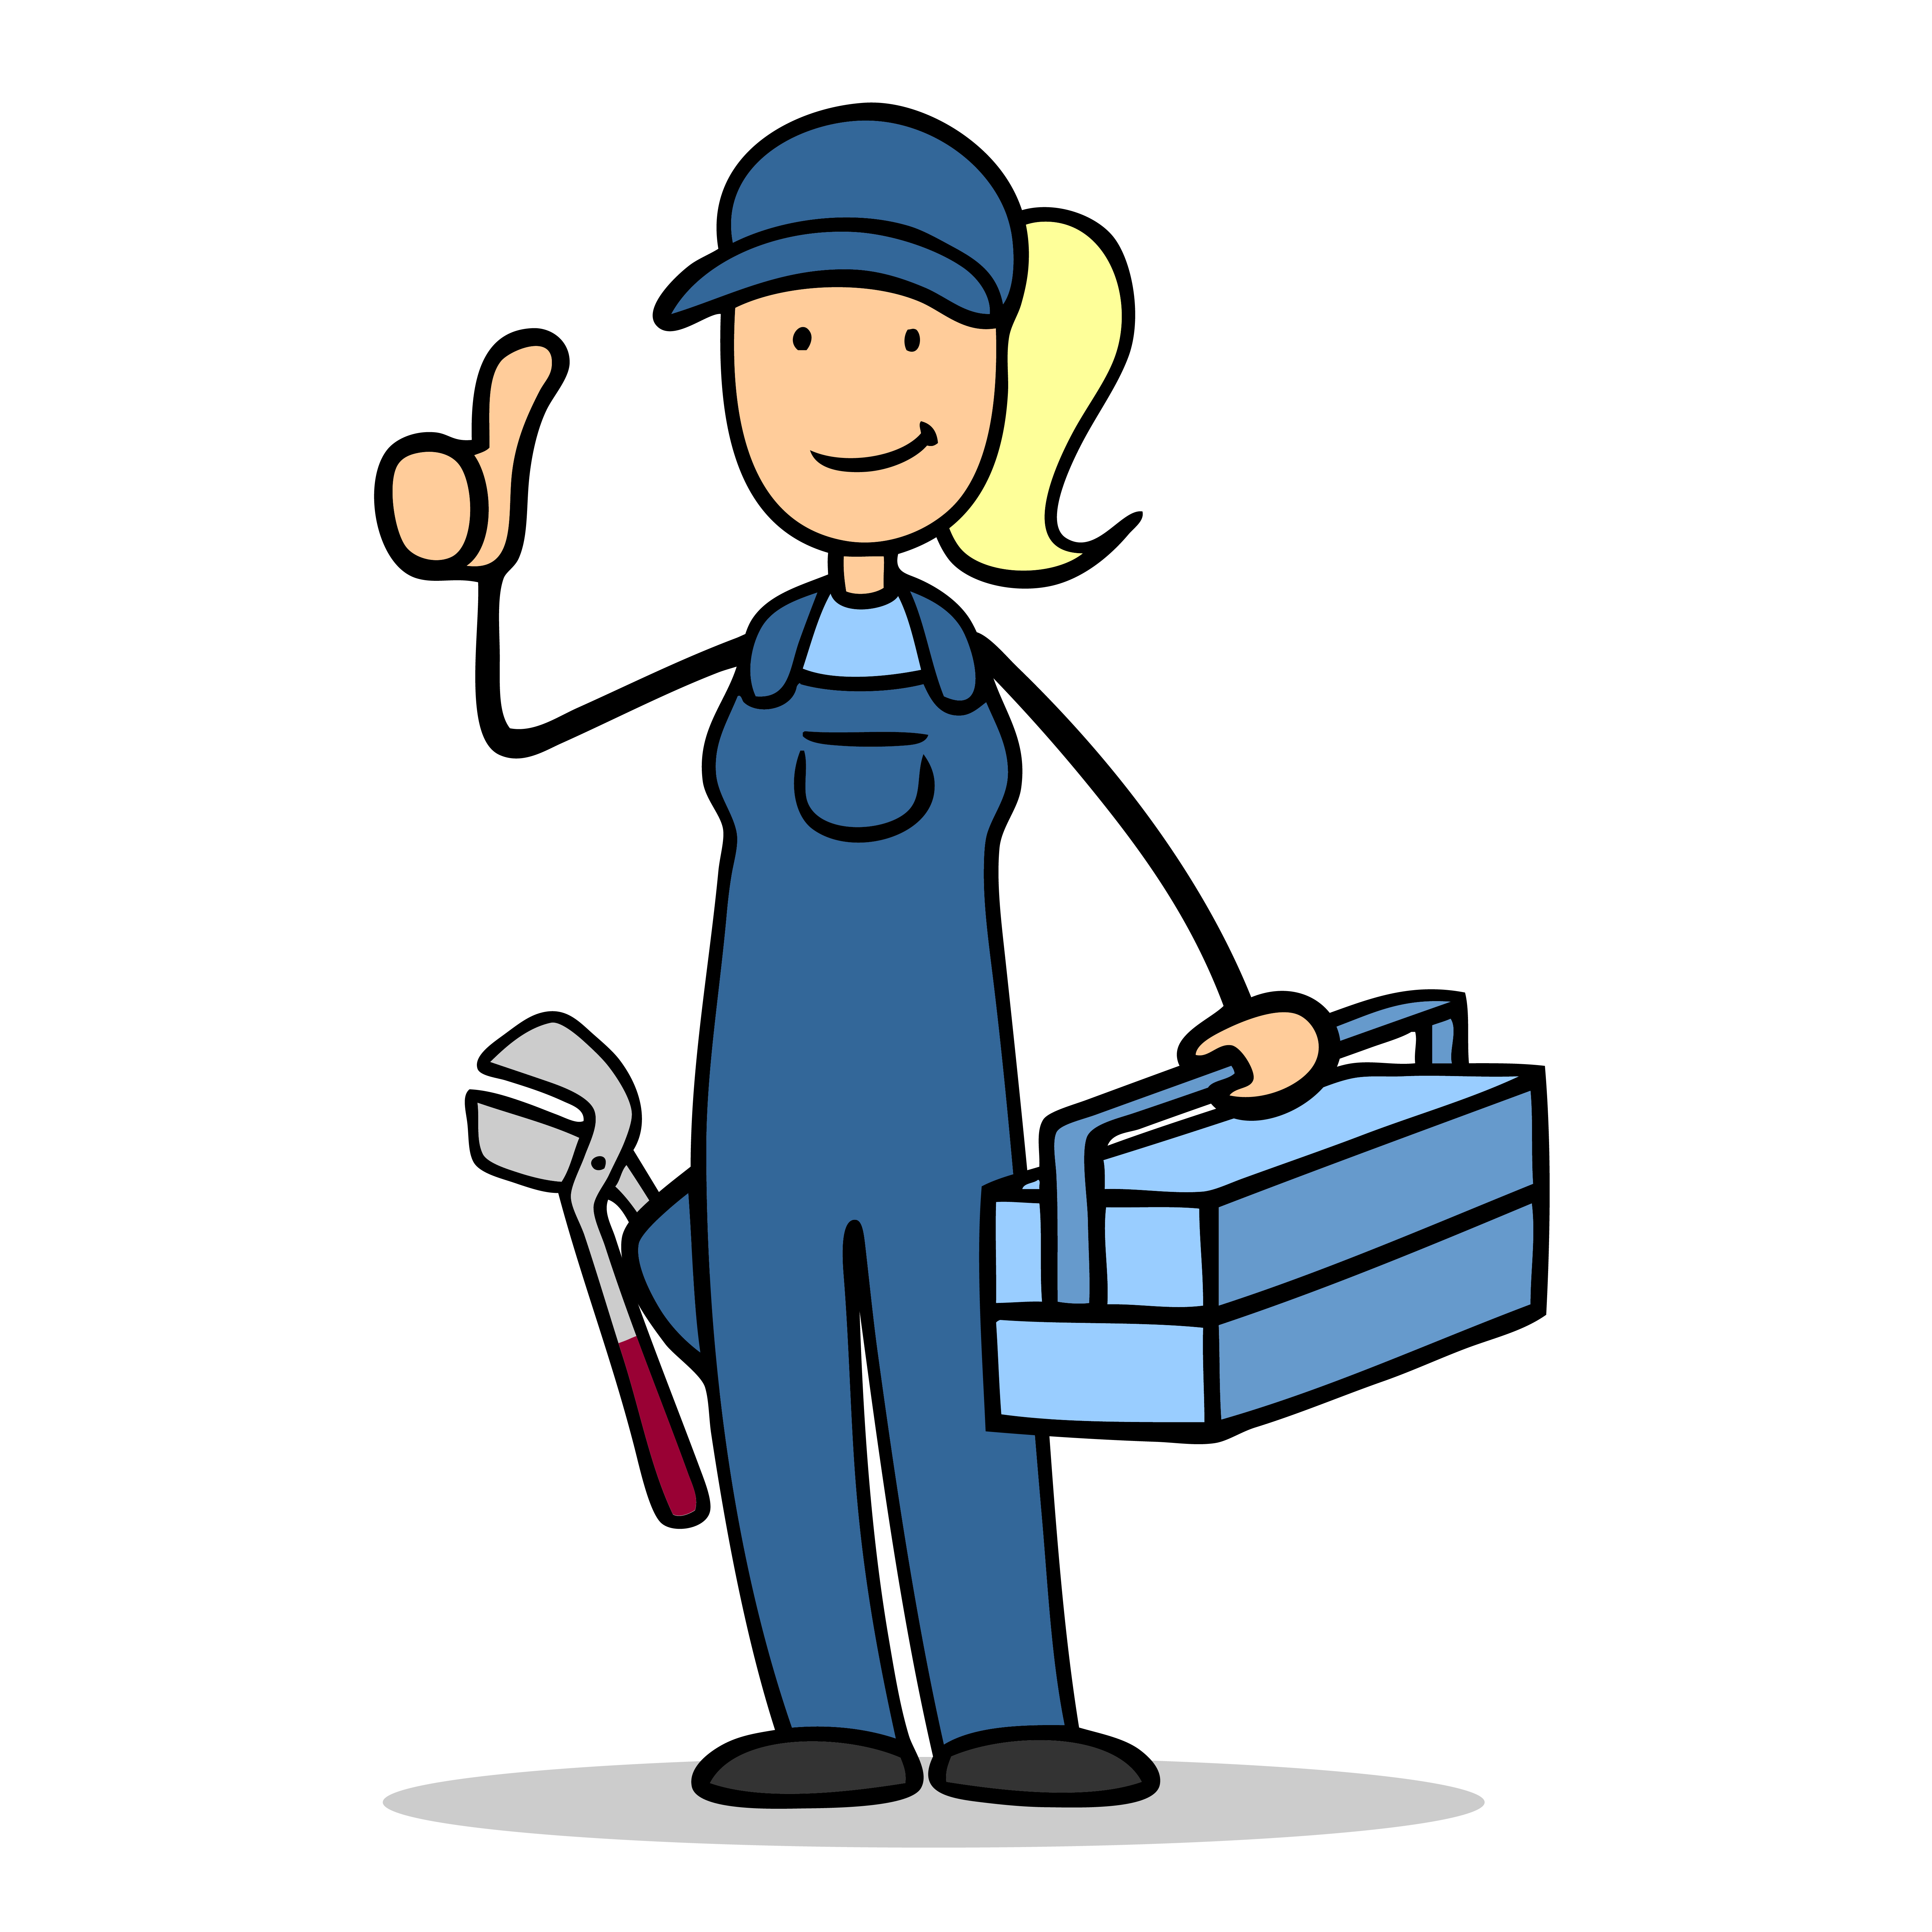 Woman clipart plumber Gas woman Cartoon The thumbs